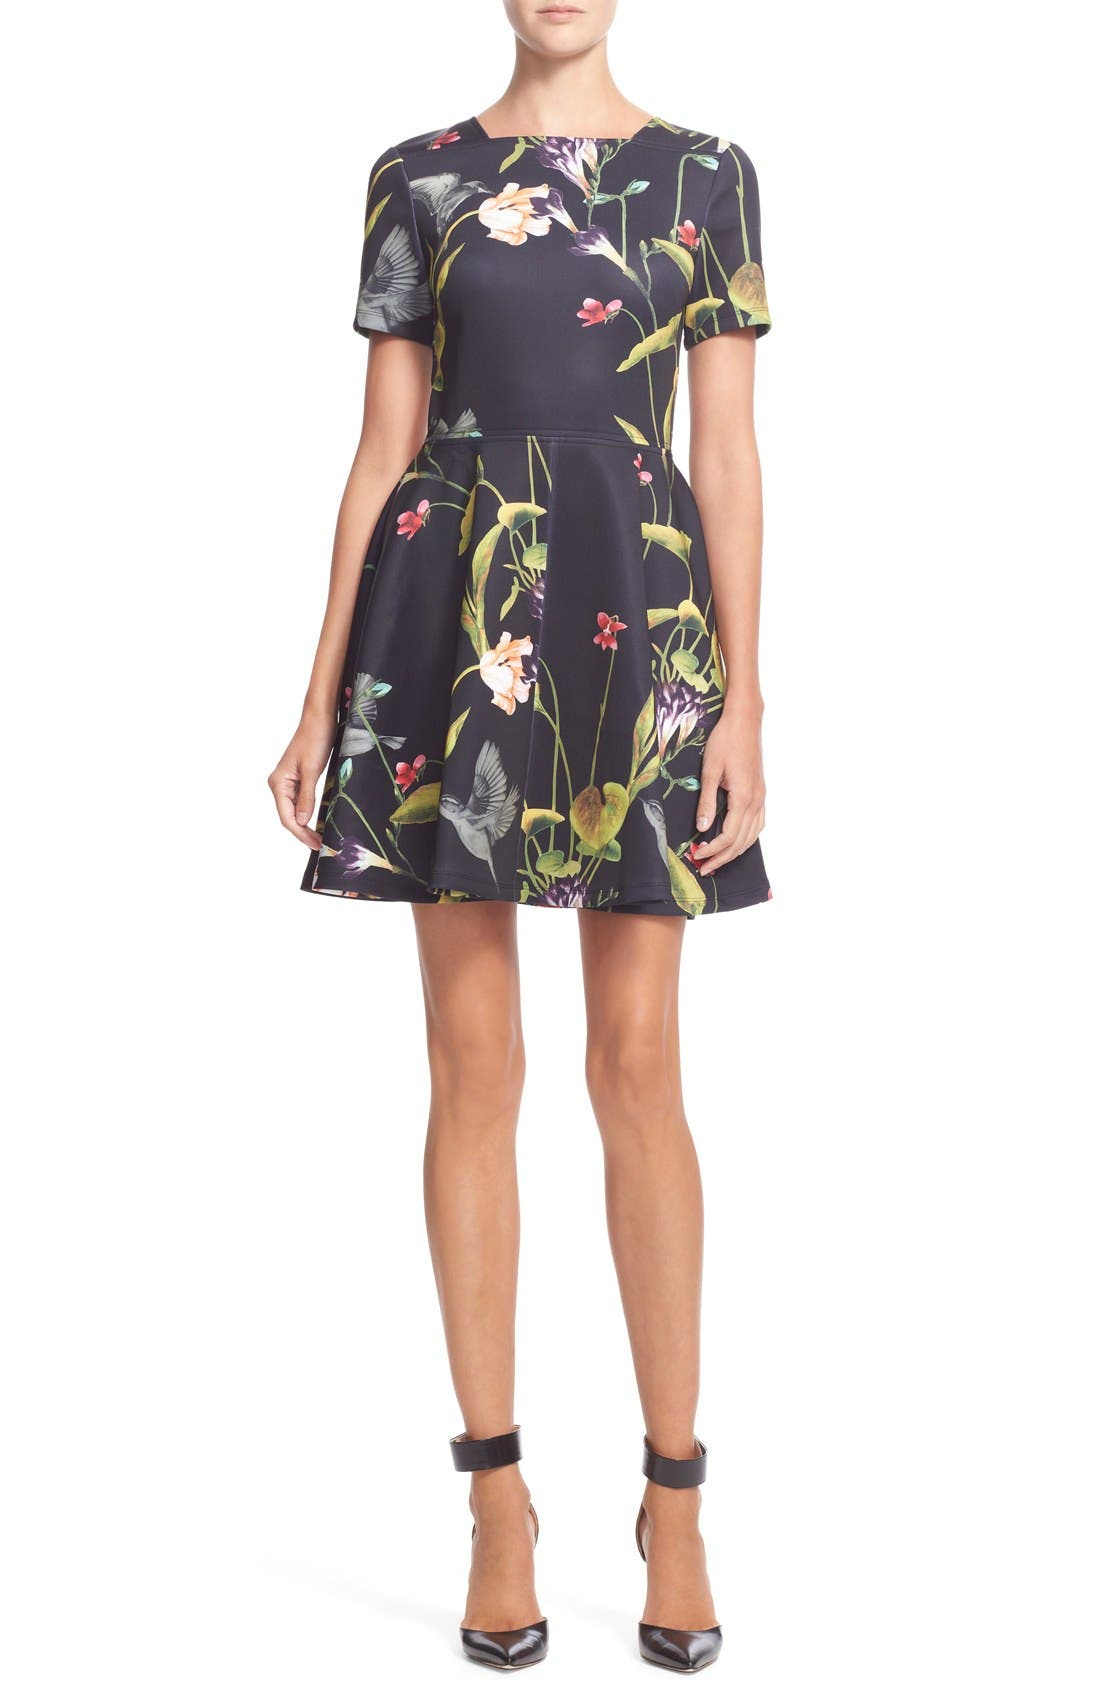 Alternate Image 1 Selected - Ted Baker London 'Moven' Floral Print Skater Dress